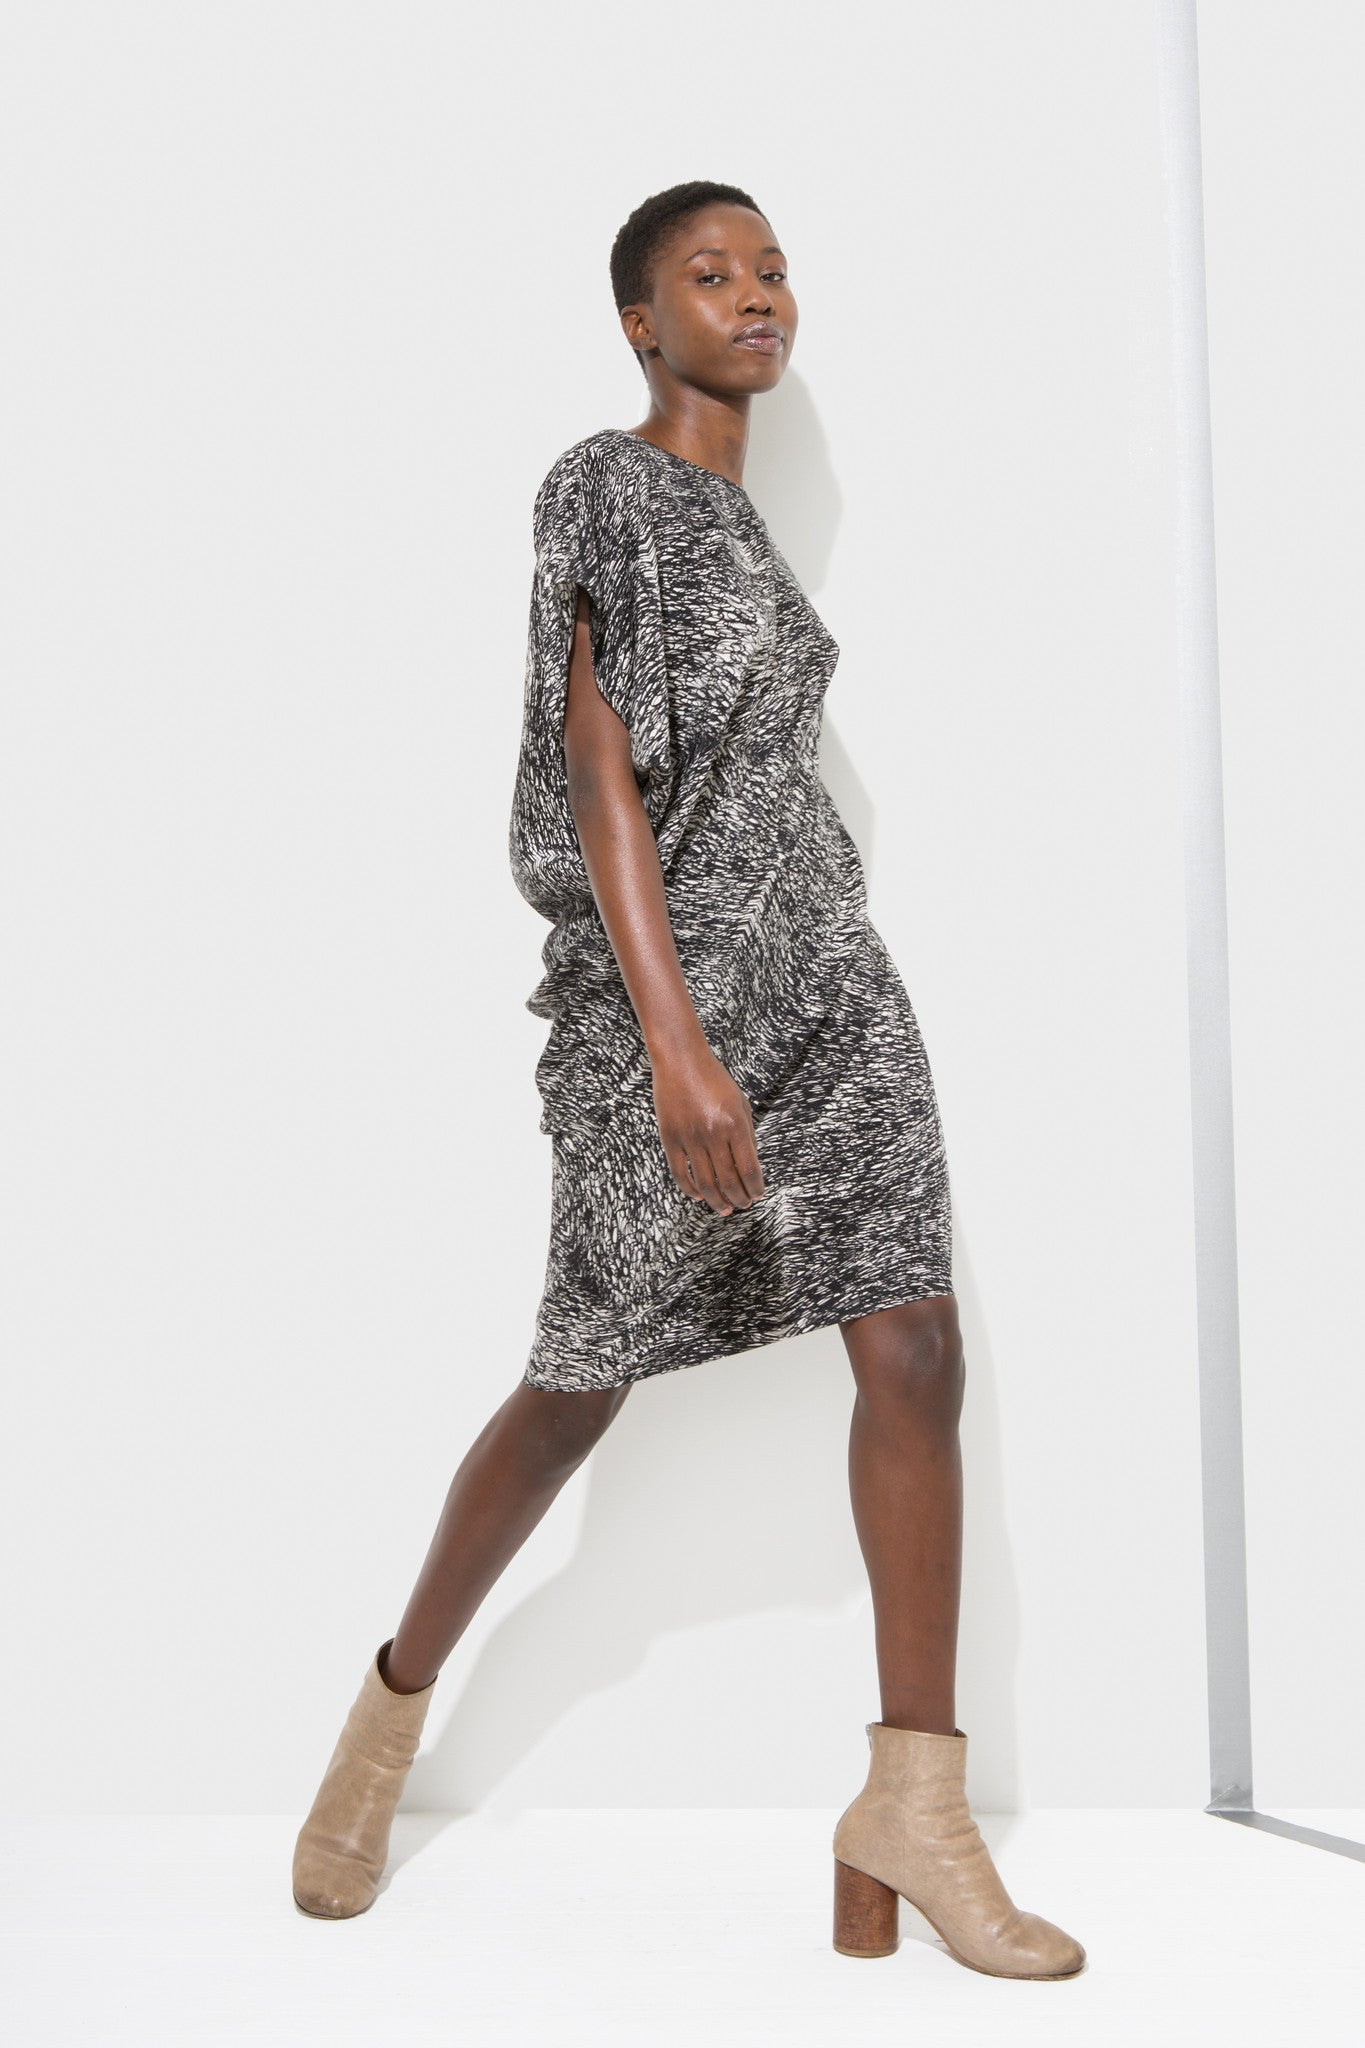 Zoe Dress is a dart less, shift- dress designed by H. Fredriksson.